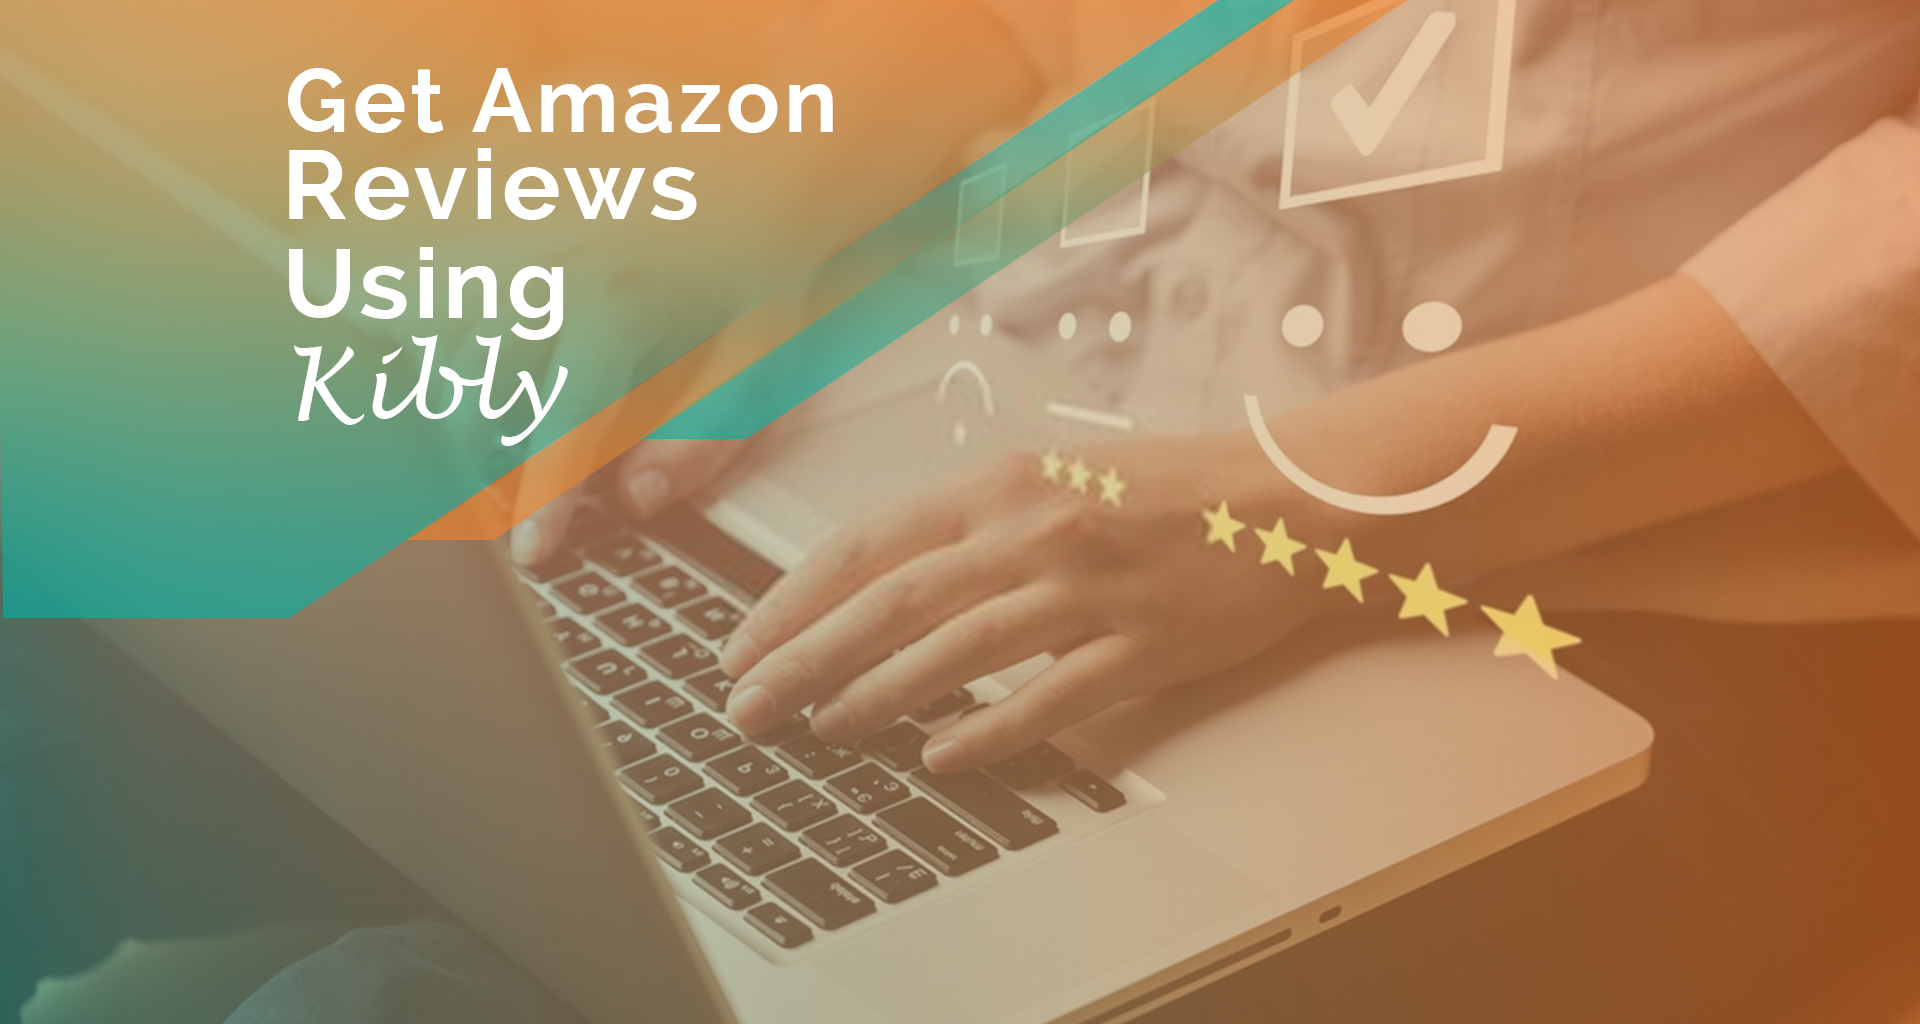 Tool Review Series : Maximizing Reviews on Amazon Using Kibly